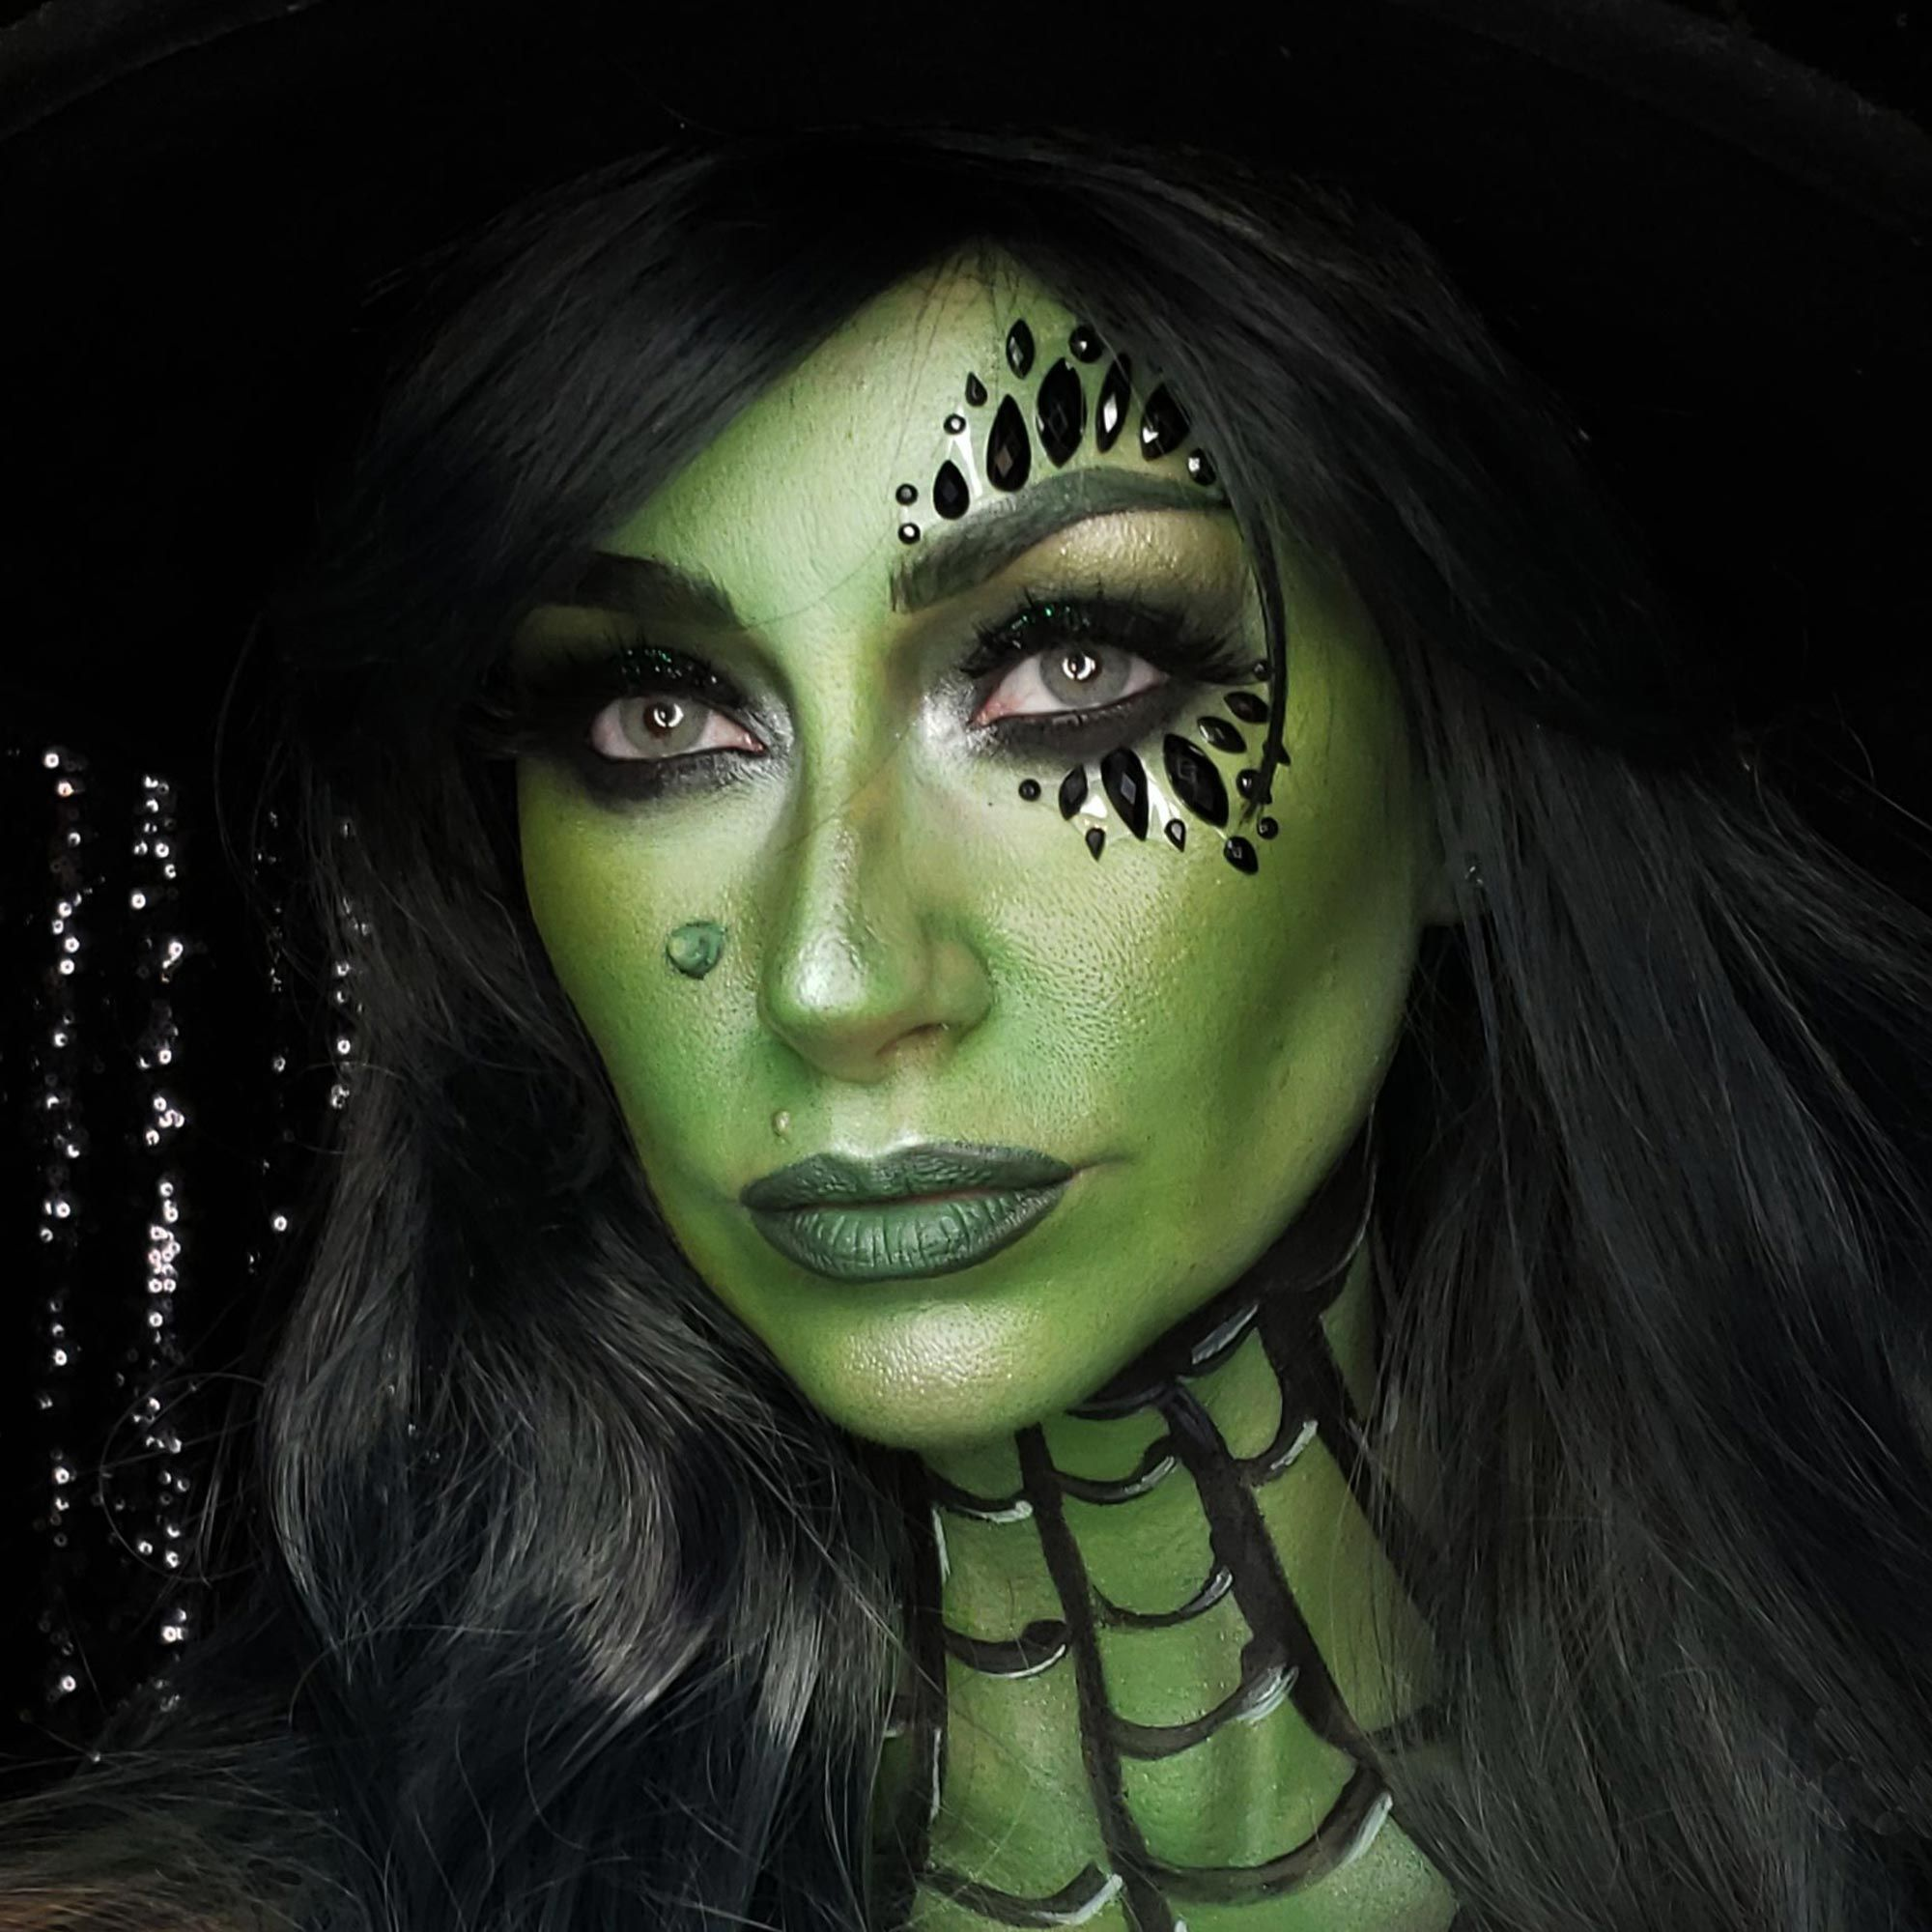 You'll Have the Most Popular Halloween Costume With This Wicked Witch Makeup Look